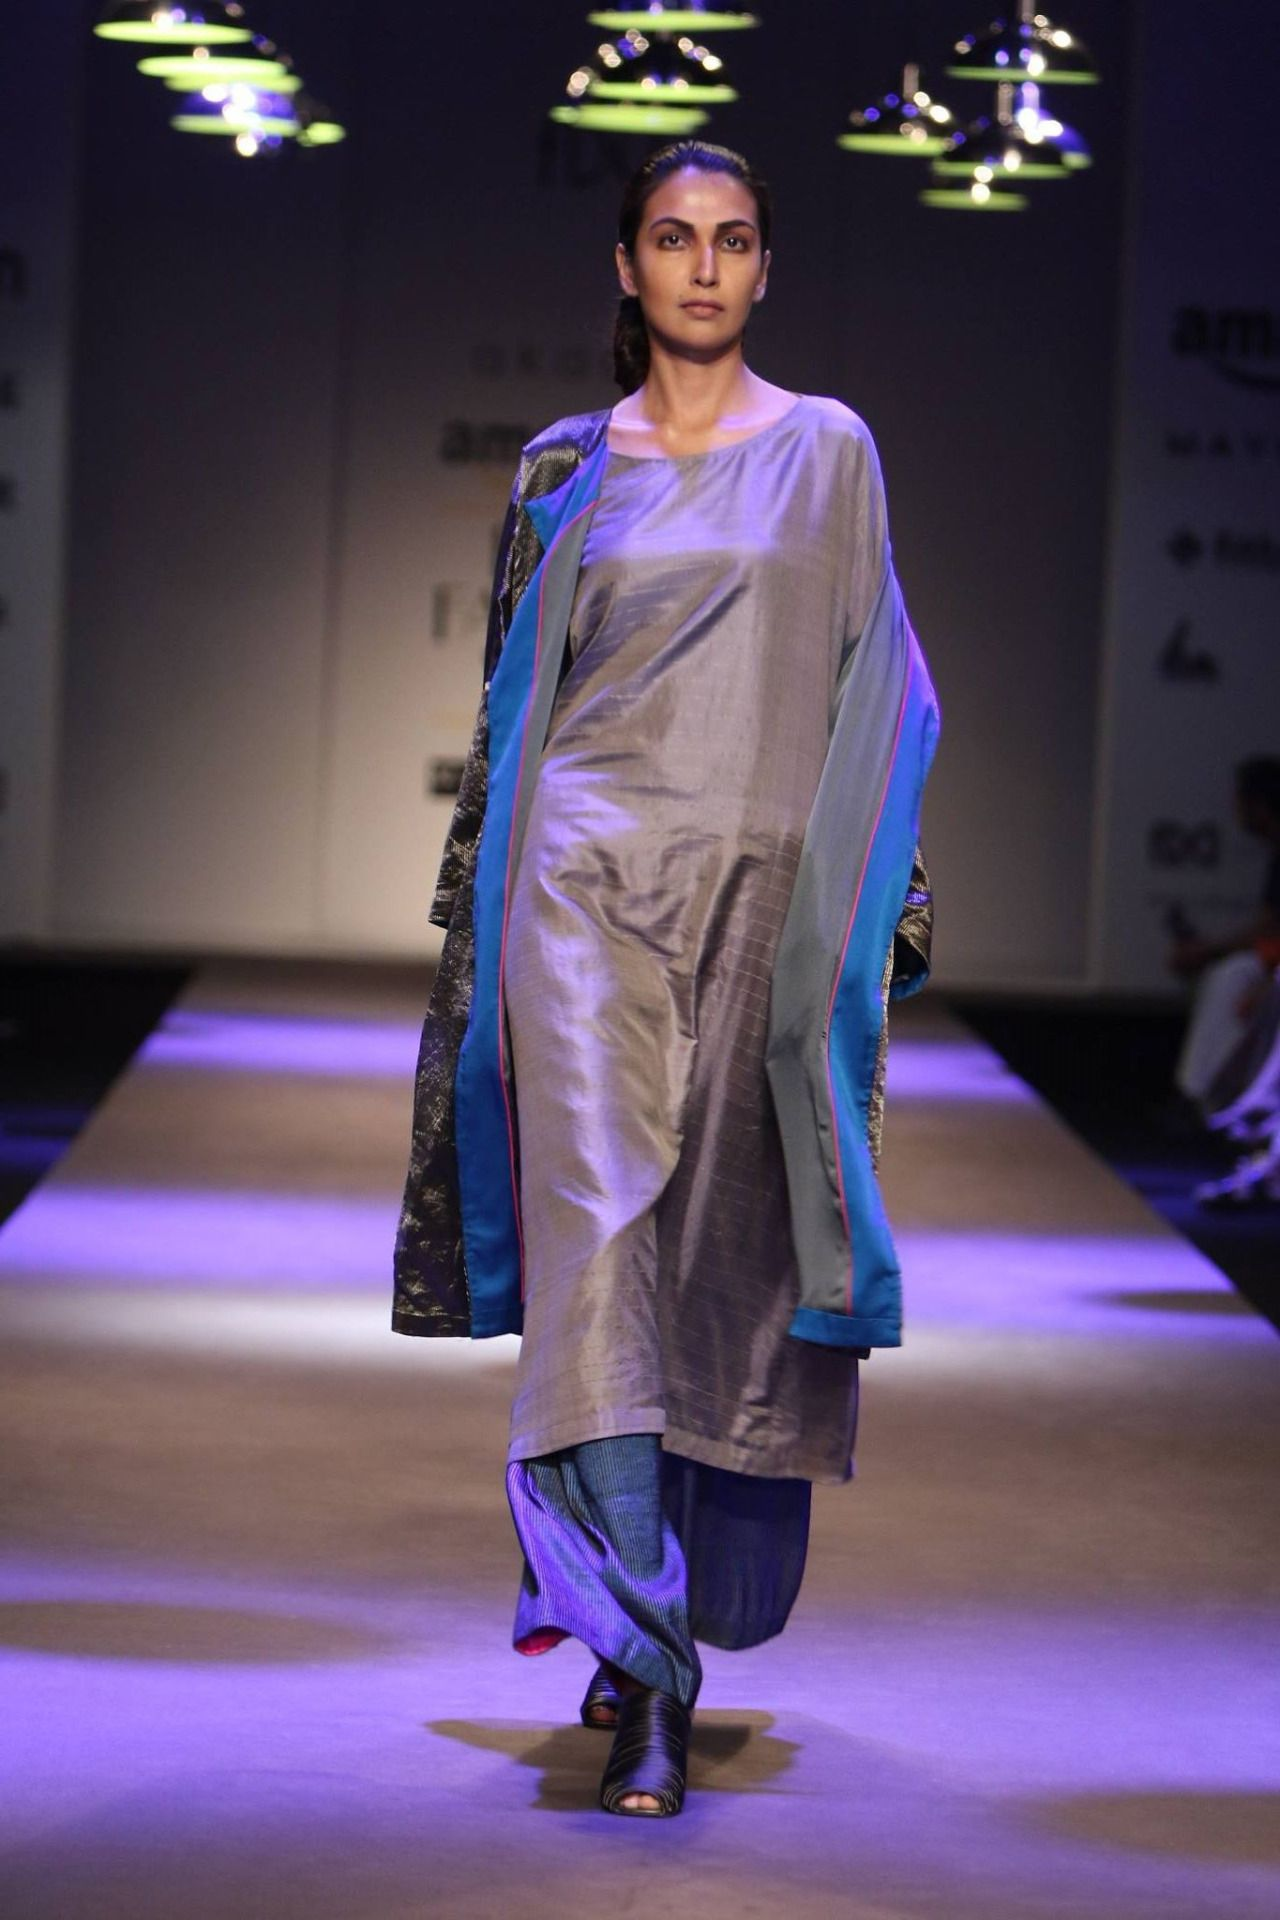 Gourav Jai Gupta displayed a collection of contemporary outfits at Amazon India Fashion Week Autumn/Winter 2016. The designer used bright and shiny material giving the show a slightly futuristic vibe. #amazonfashionweek2016 #aifw #catwalk #model #indianfashiondesigners #fashionshow #winter #autumn #gauravjaigupta #fashiondesingers #strandofsilk